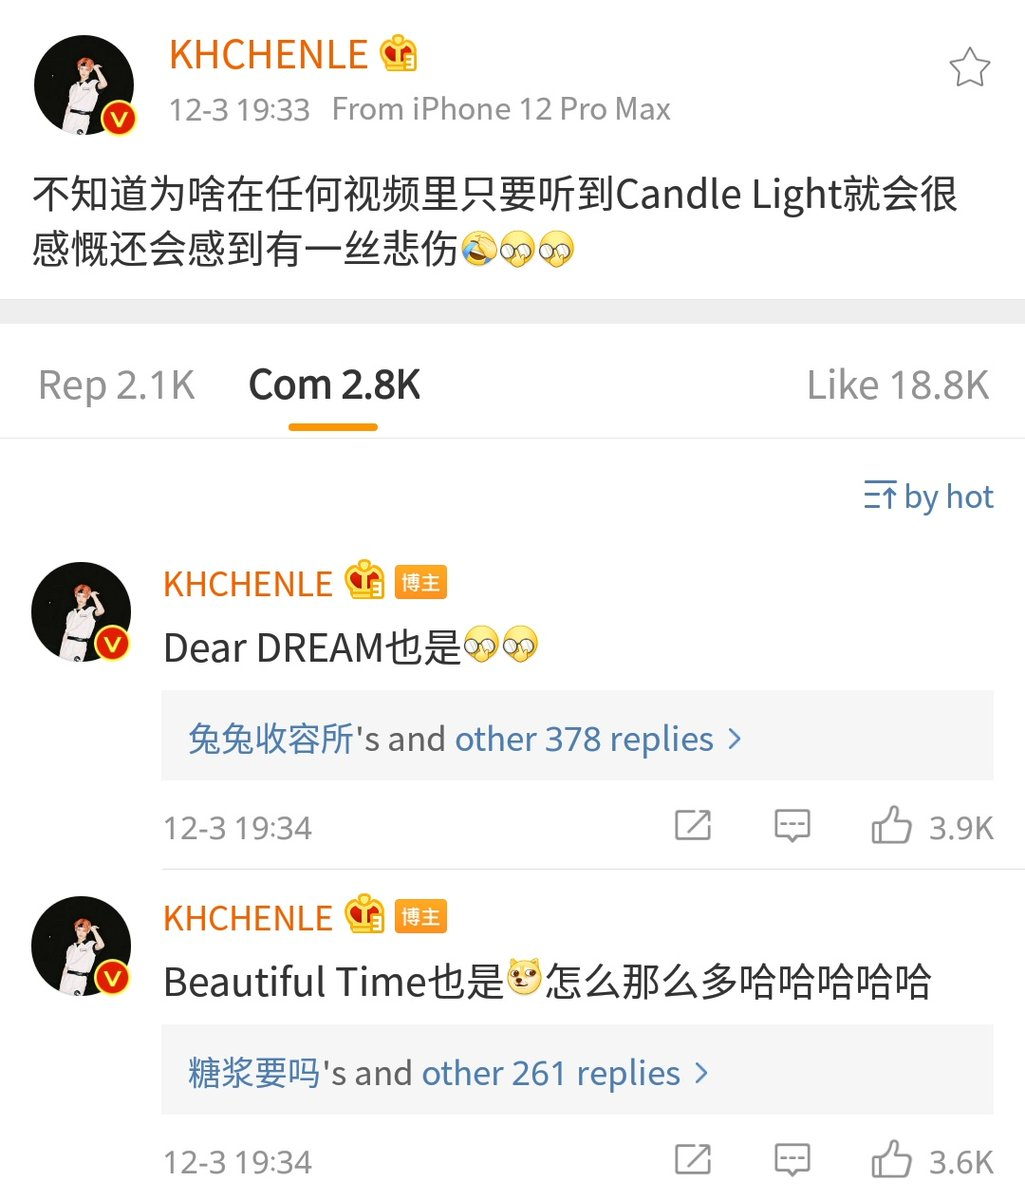 201203 #CHENLE weibo https://t.co/DUkVycGbZK  - I don't know why but in any video, as long as I hear Candle Light I get very emotional & even feel some sadness - Dear DREAM too - Beautiful Time too. Why are there so many hahahahaha  #NCTDREAM @NCTsmtown_DREAM https://t.co/qFt72rHzaI